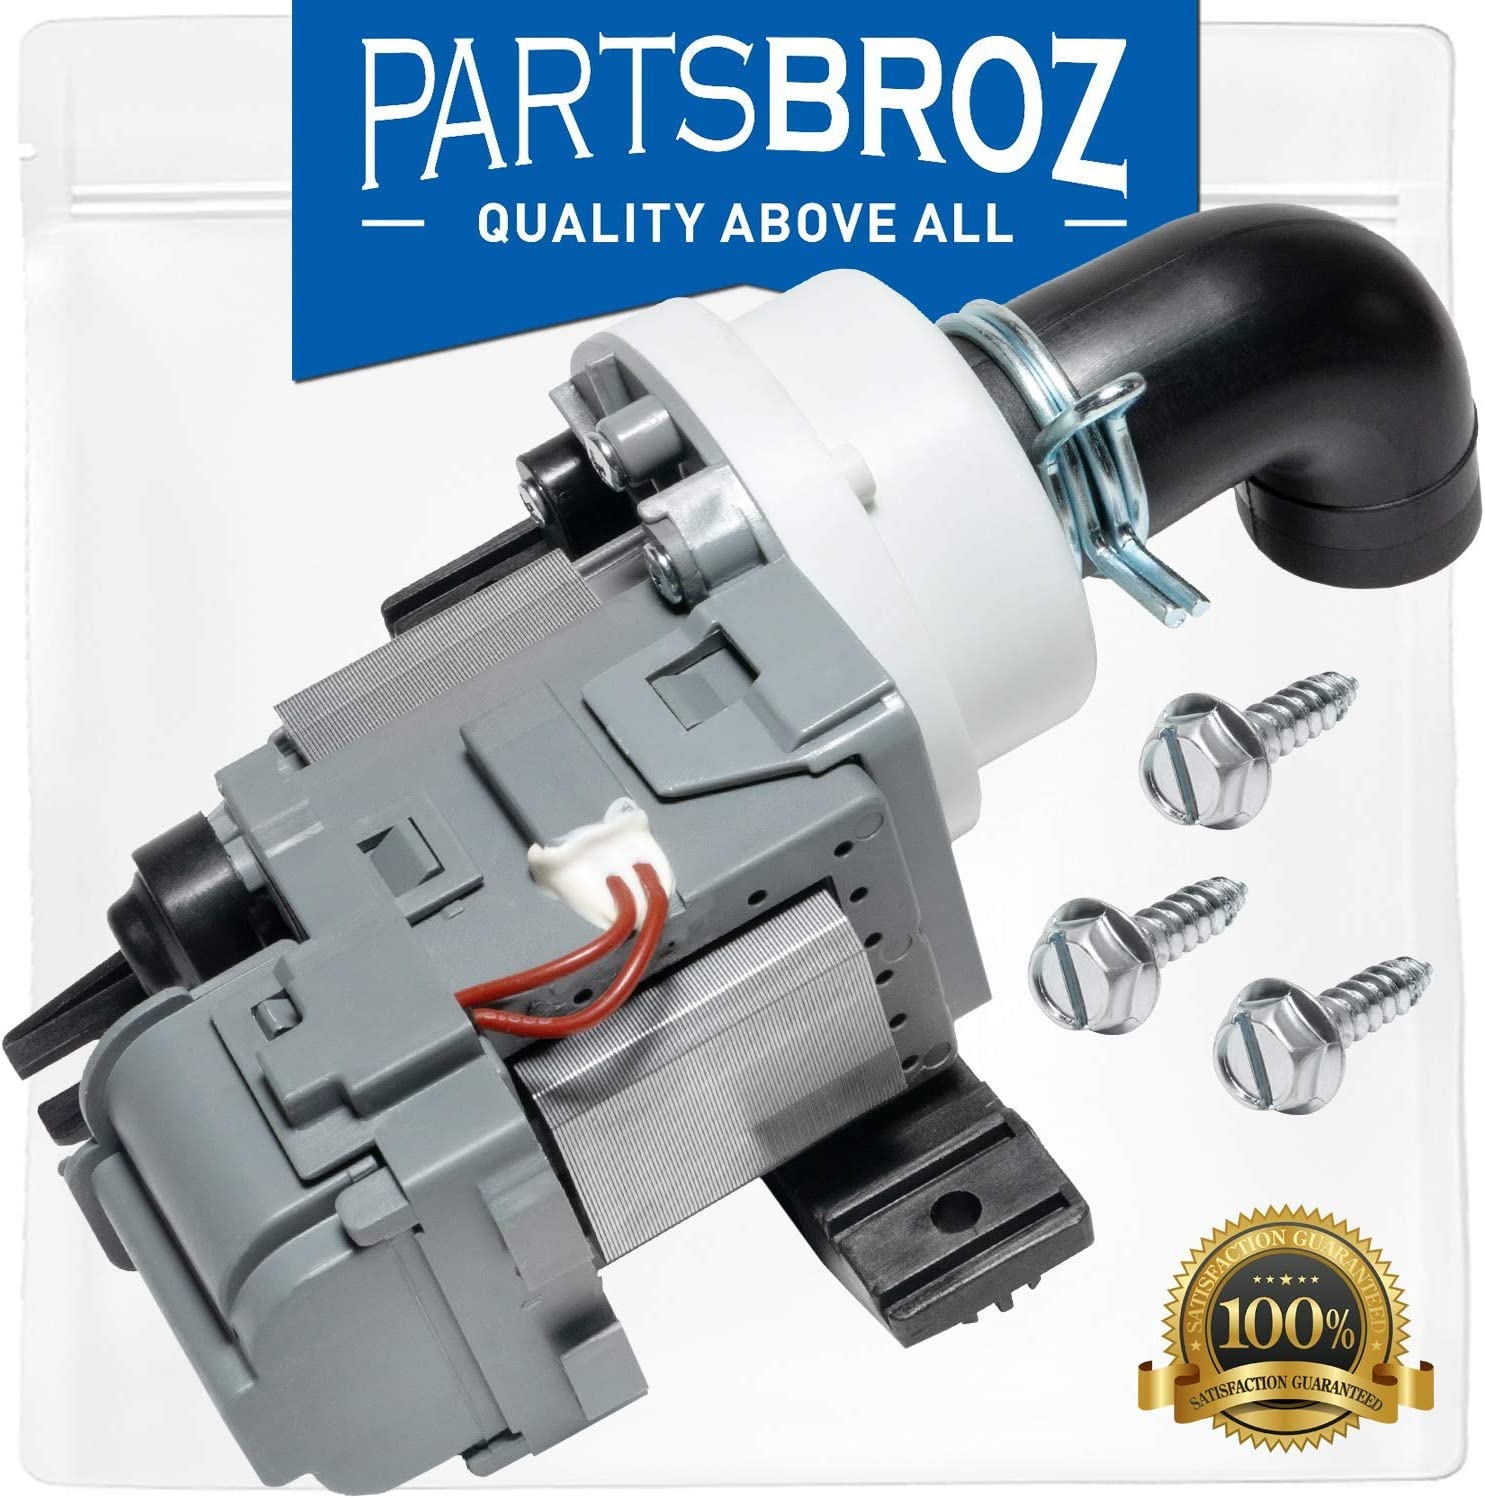 W10536347 Drain Pump for Whirlpool Washing Machines by PartsBroz - Replaces Part Numbers AP5650269, 2392433, 8542672, PS5136124, W10049390, W10155921 & W10217134